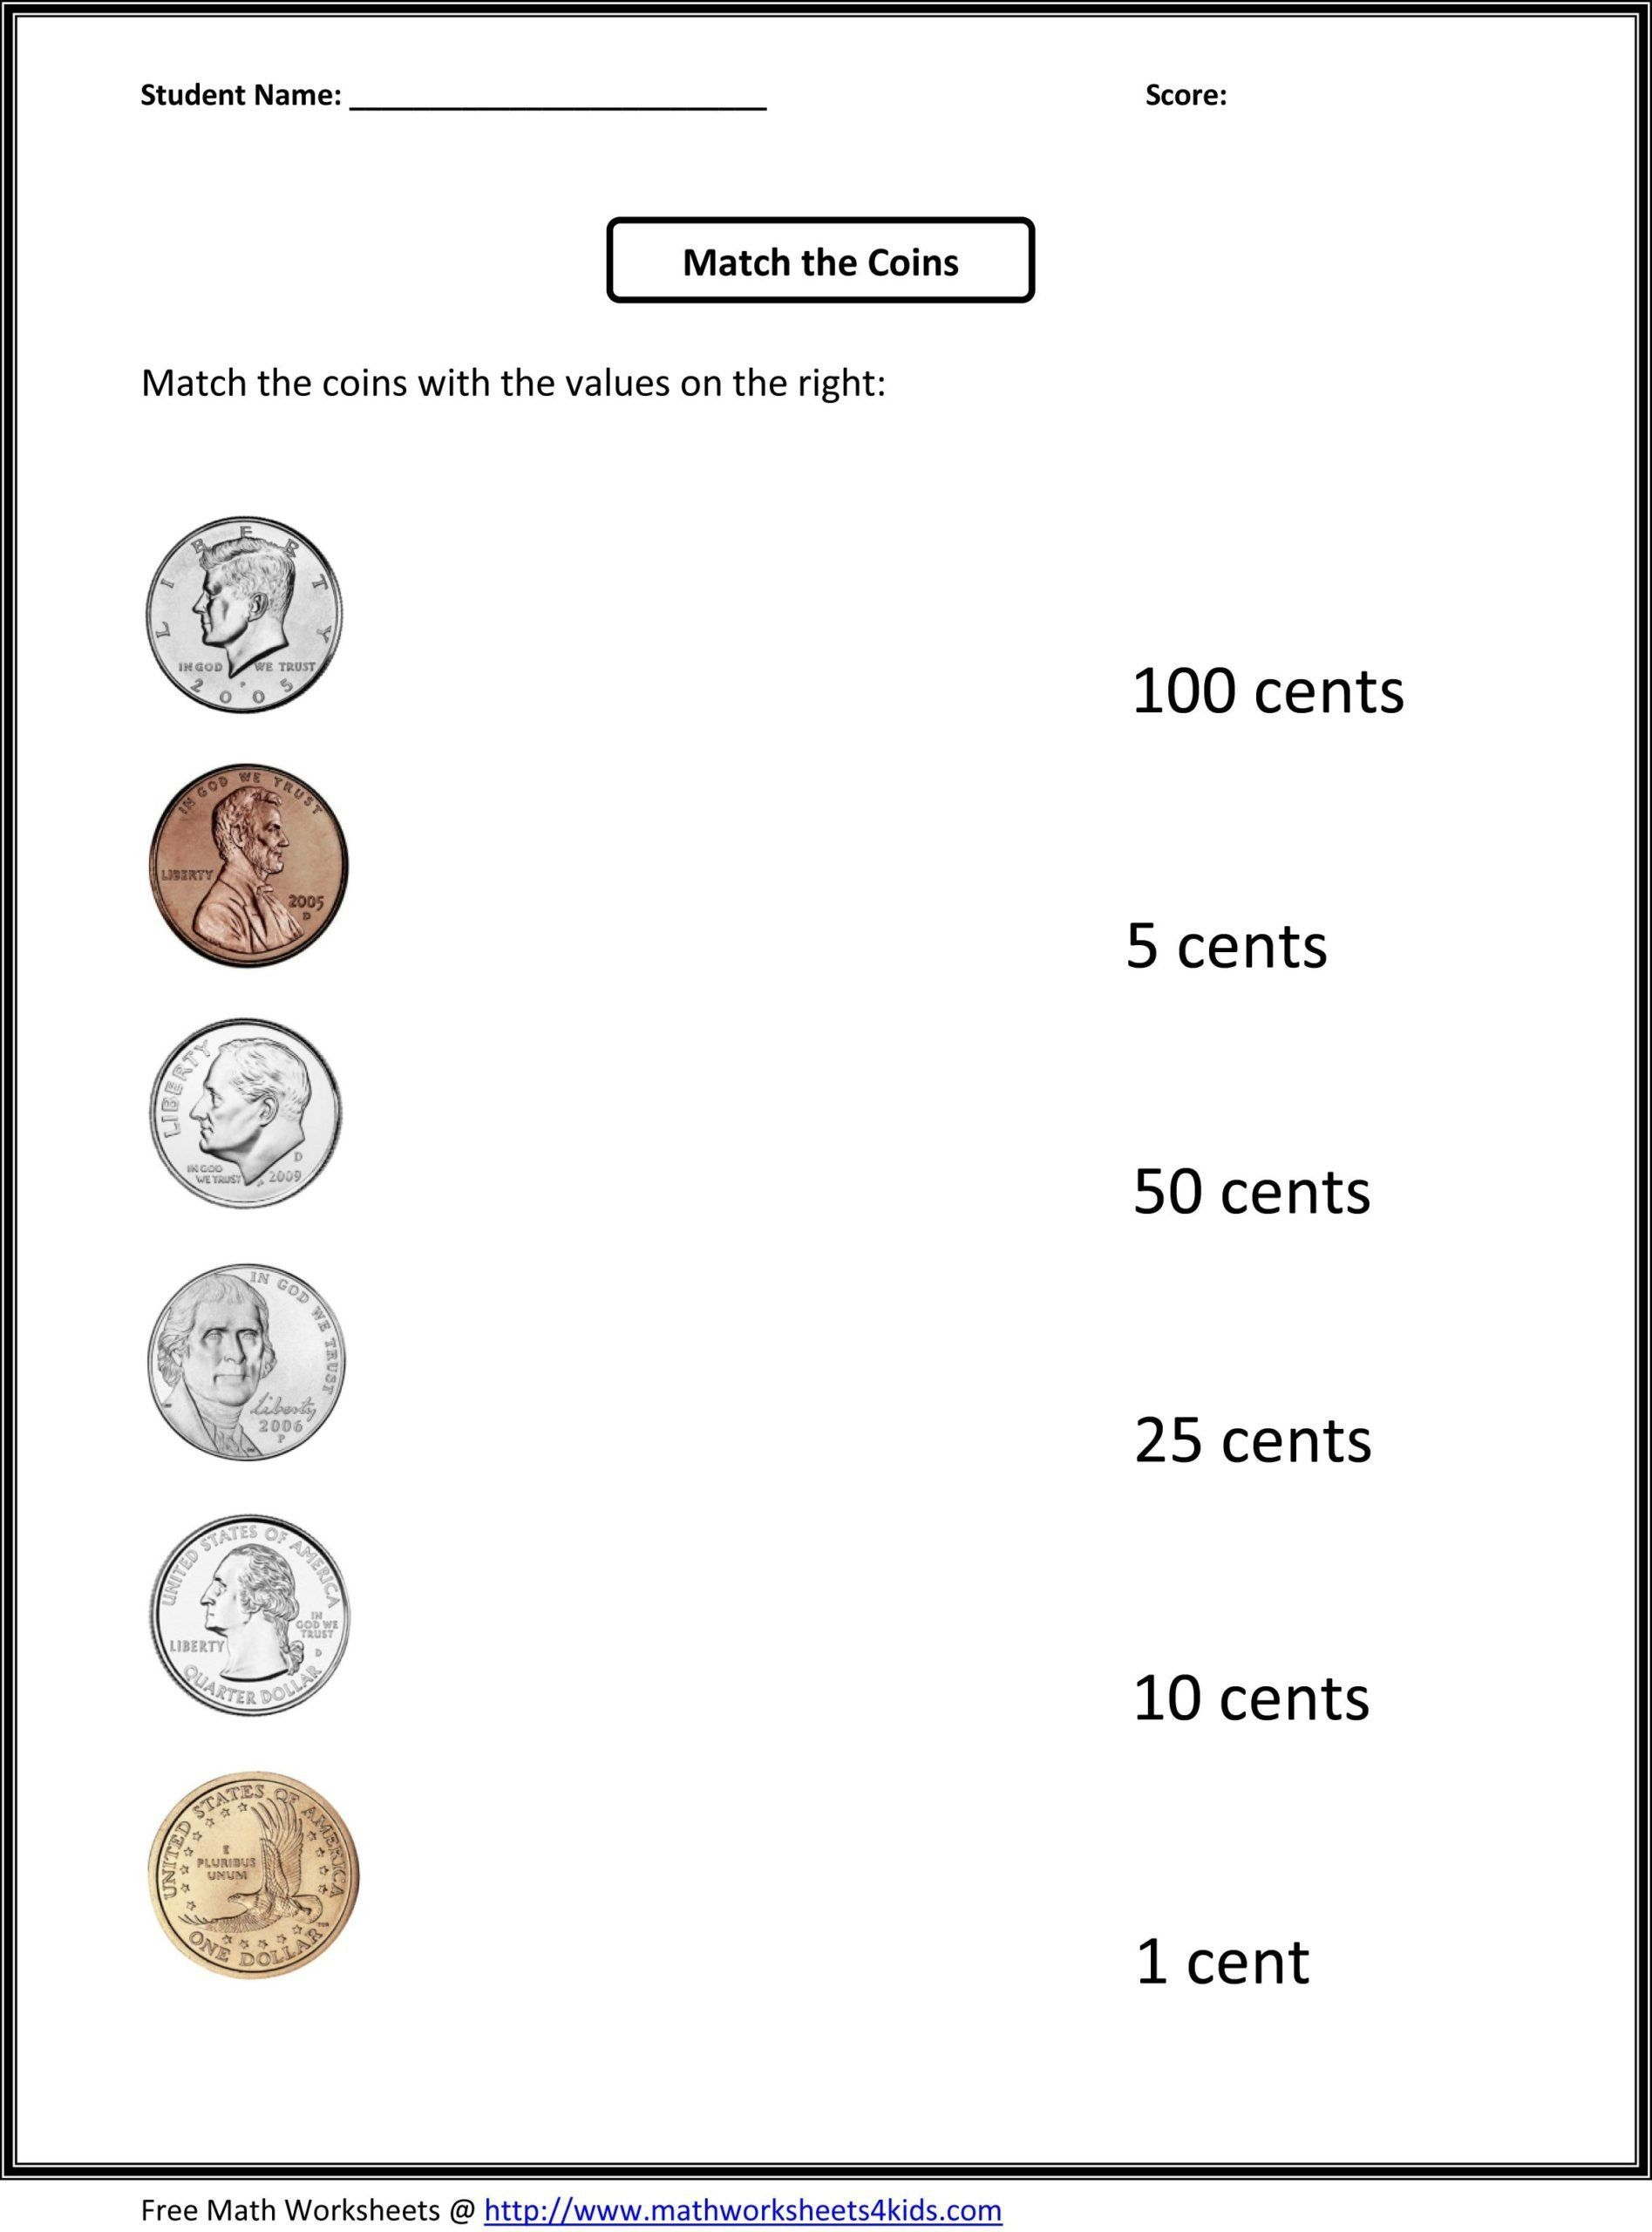 Dime Worksheets For Kindergarten Free 1st Grade Worksheets Match The Coins And Its Values First Grade Math Worksheets Money Math Worksheets Math Worksheets